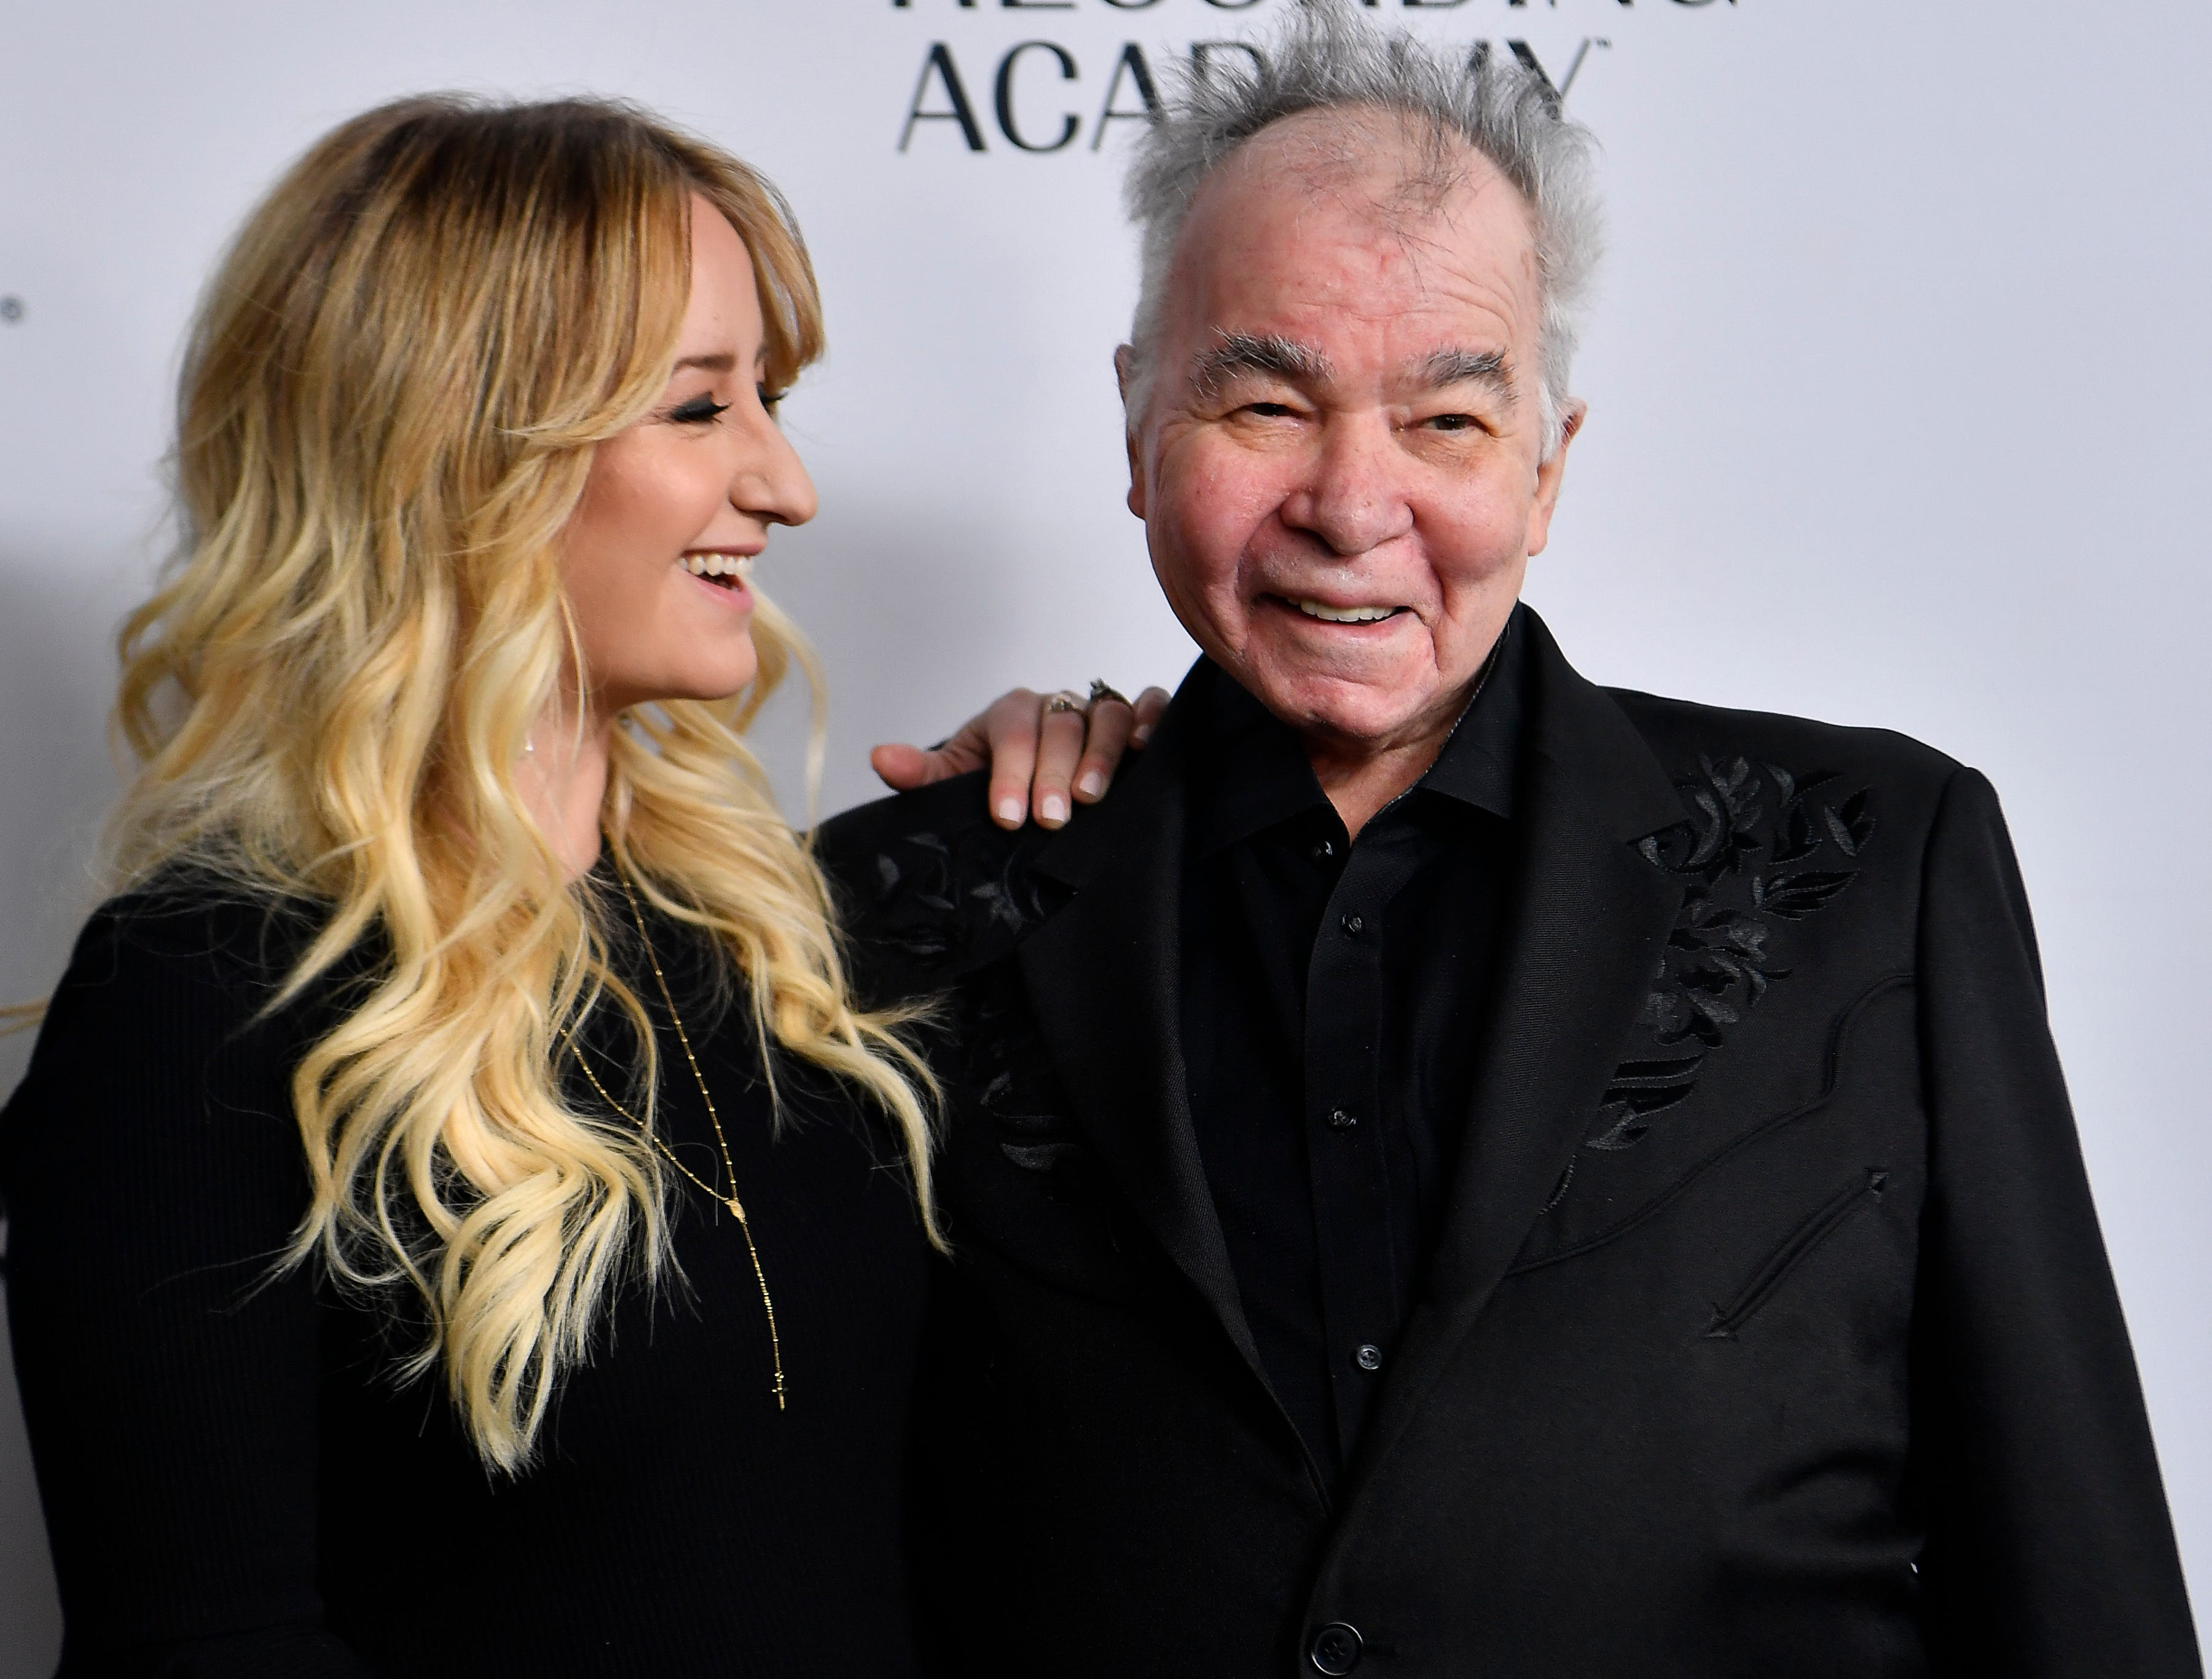 Dwight Yoakam, Margo Price, Ashley McBryde and more pay tribute to John Prine ahead of Grammys